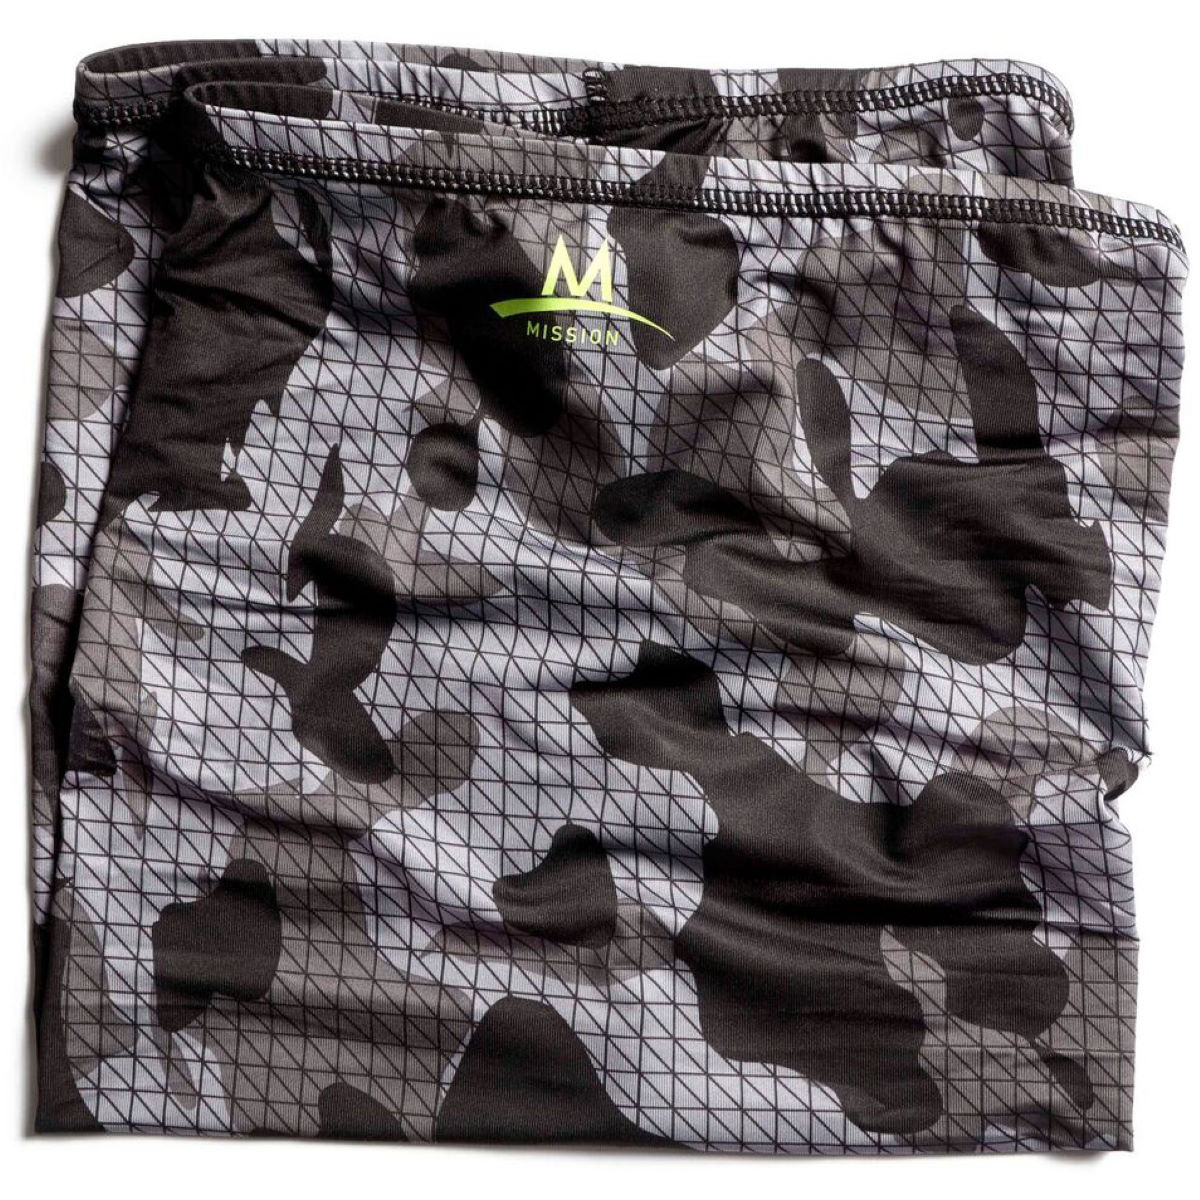 Arena Mission Multicools Towel - Toallas